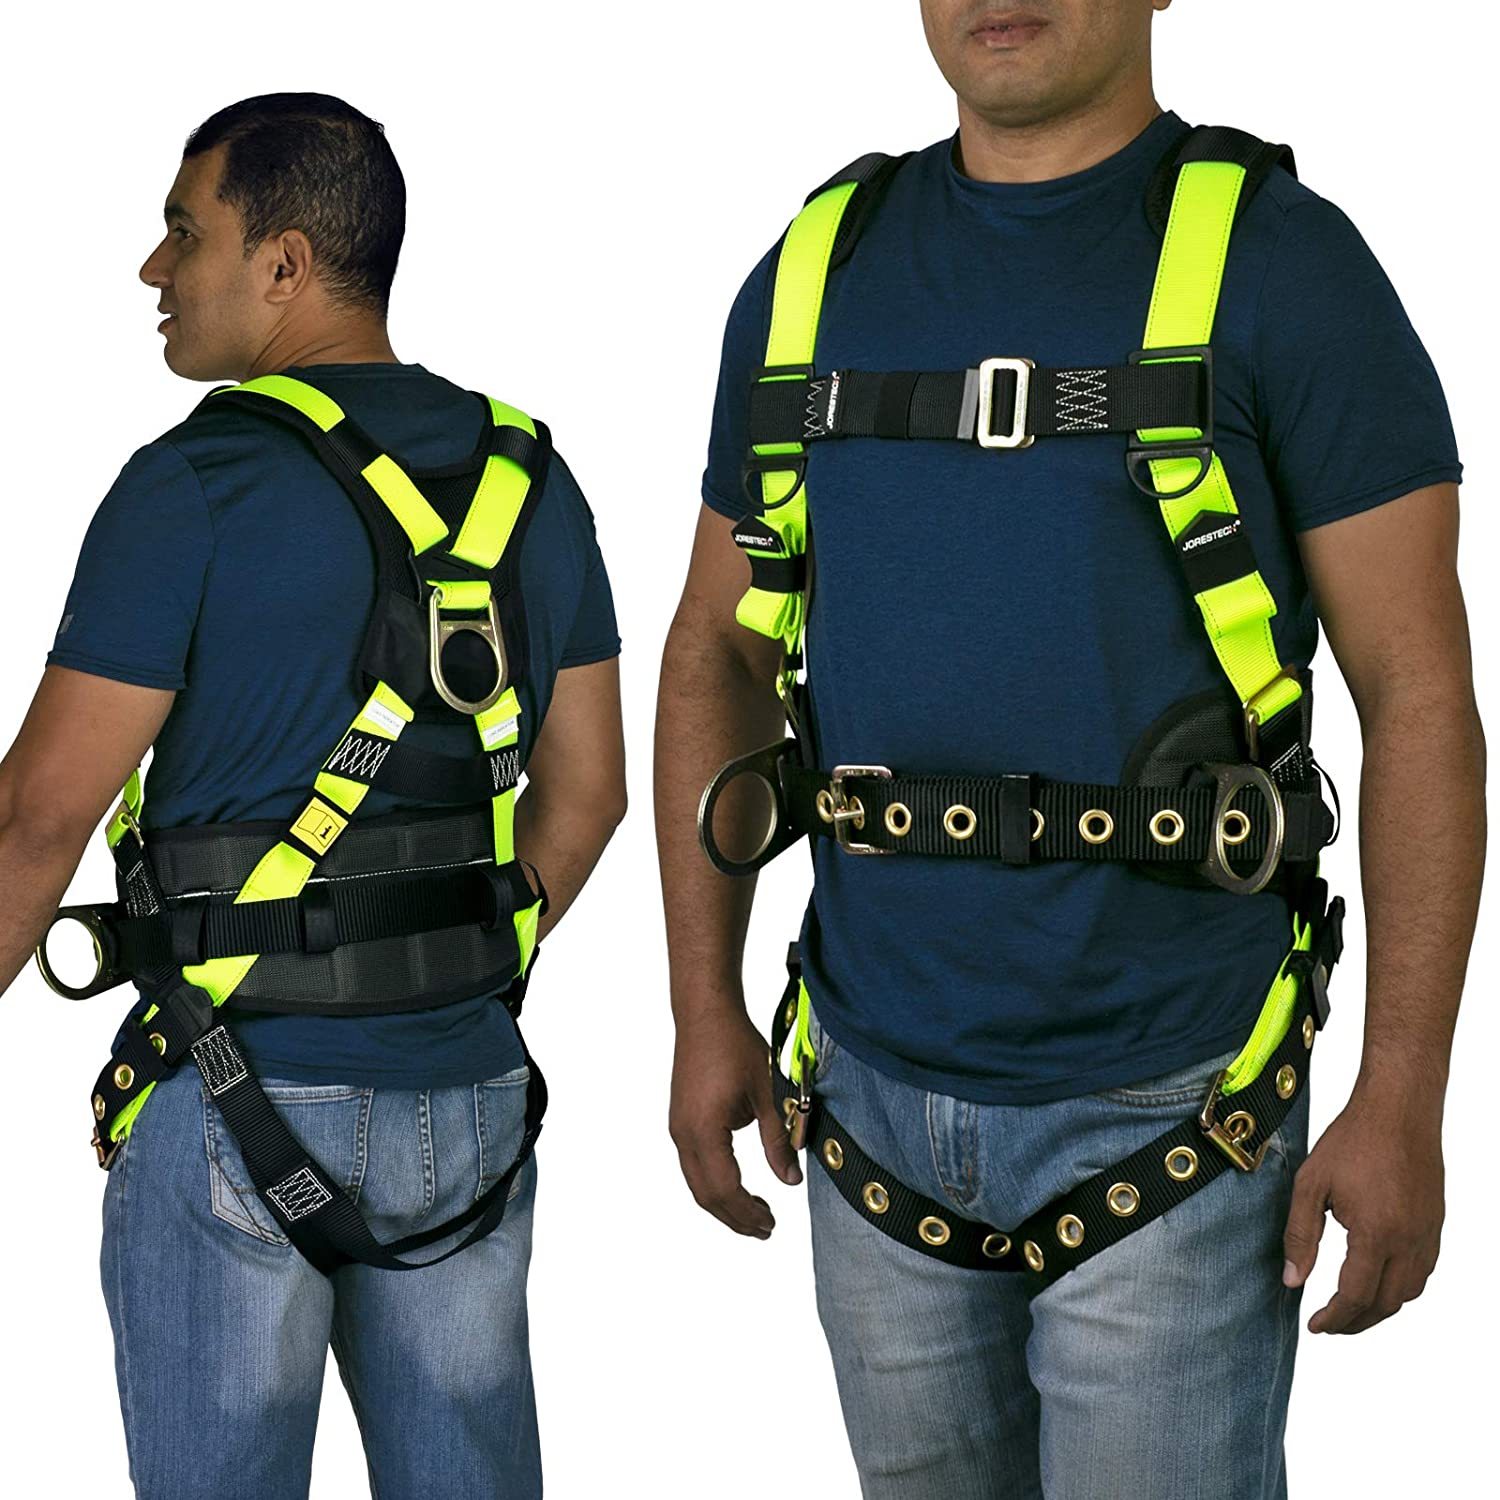 3 D Rings with Grommets JORESTECH Safety Harness Full Body Protection Fall Arrest Yellow//Lime Back D Ring ANSI with High Visibility